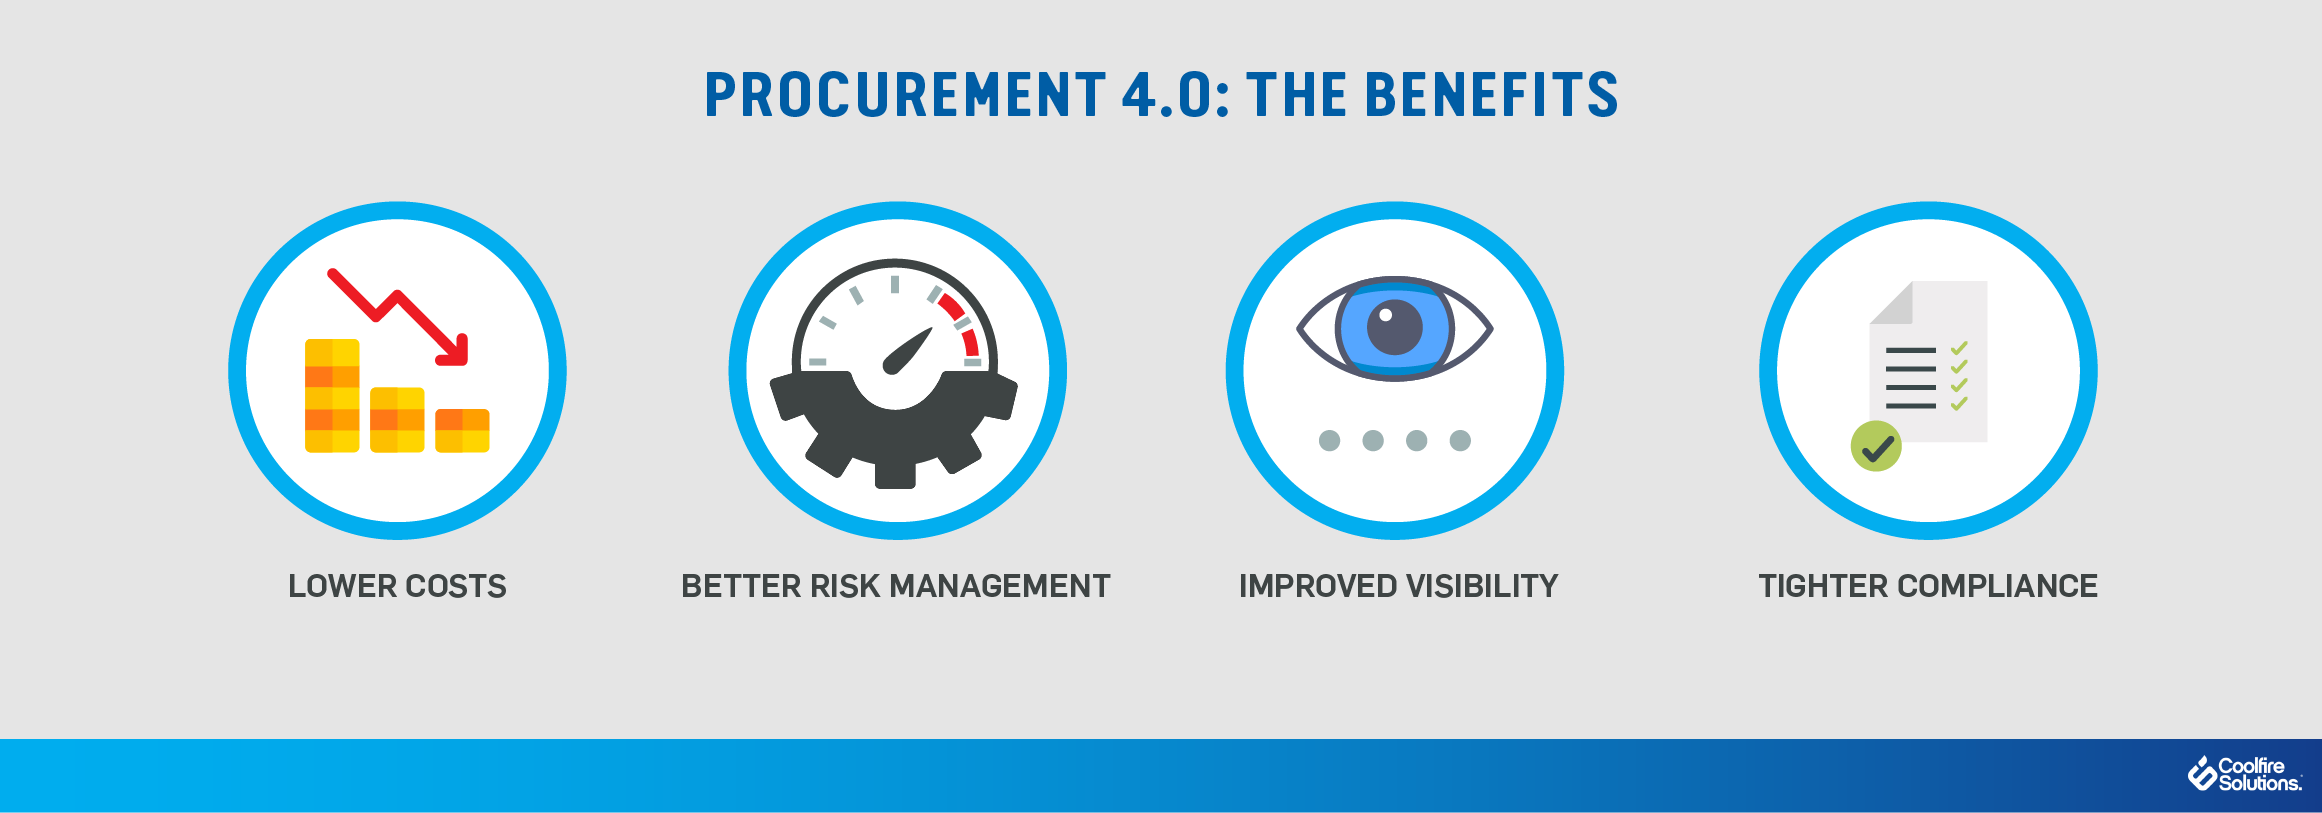 procurement benefits